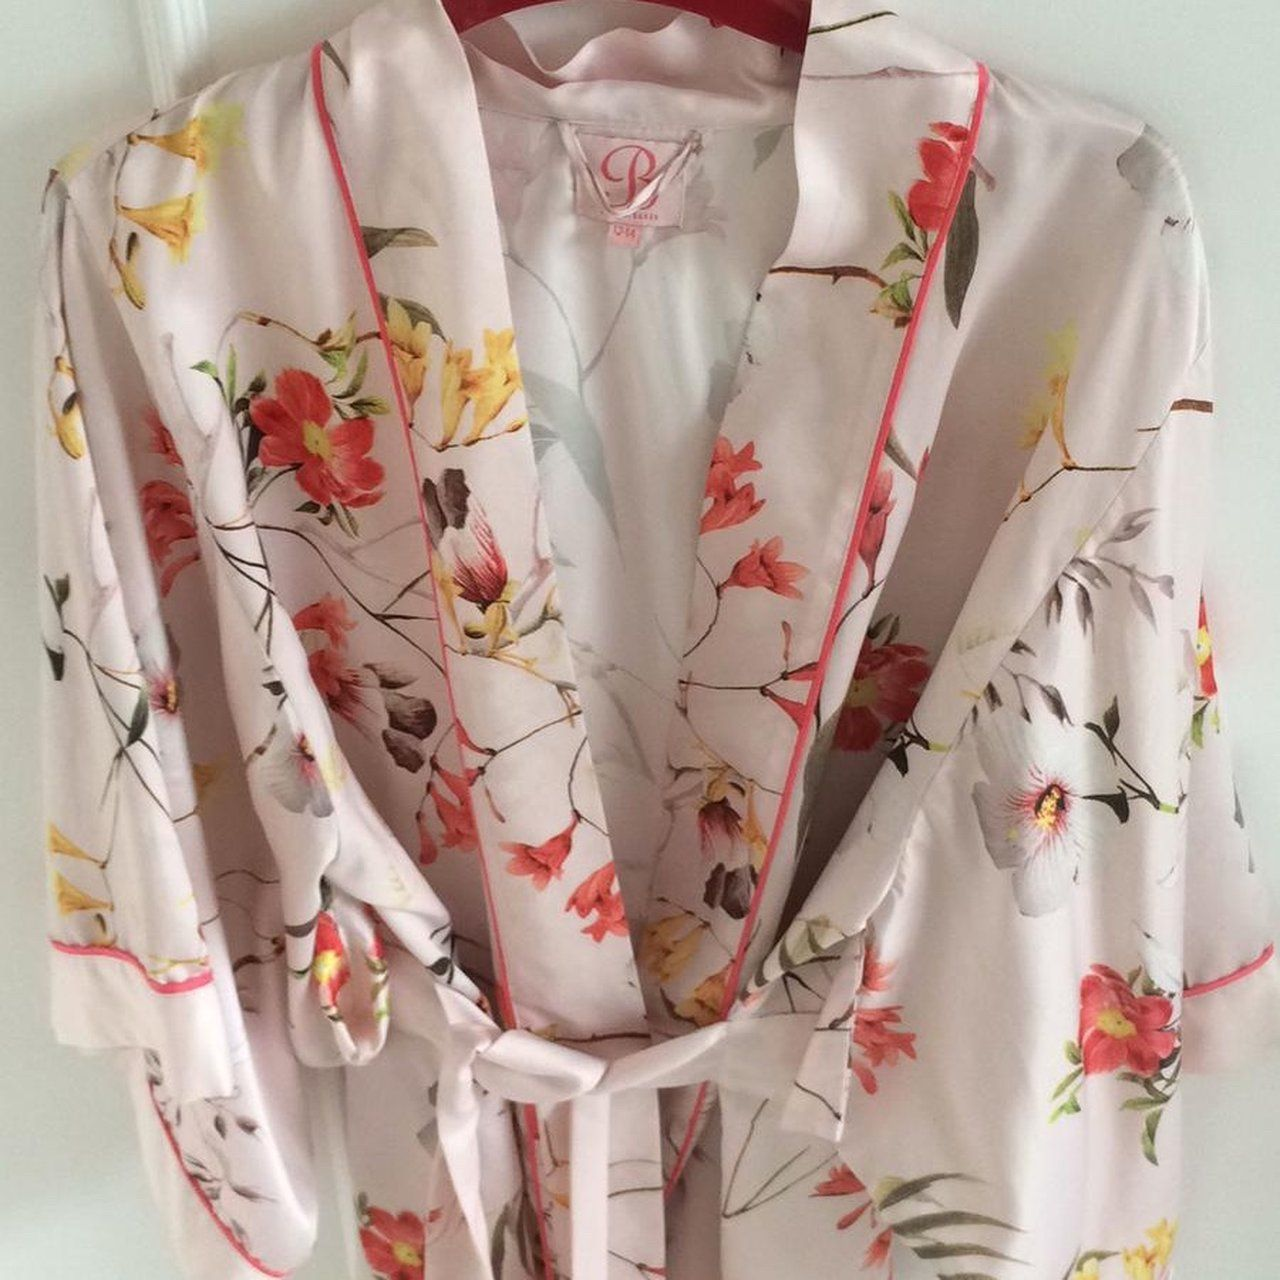 6c6798f5da47f0 Ted Baker dressing gown for sale. Light and pretty. Size but - Depop